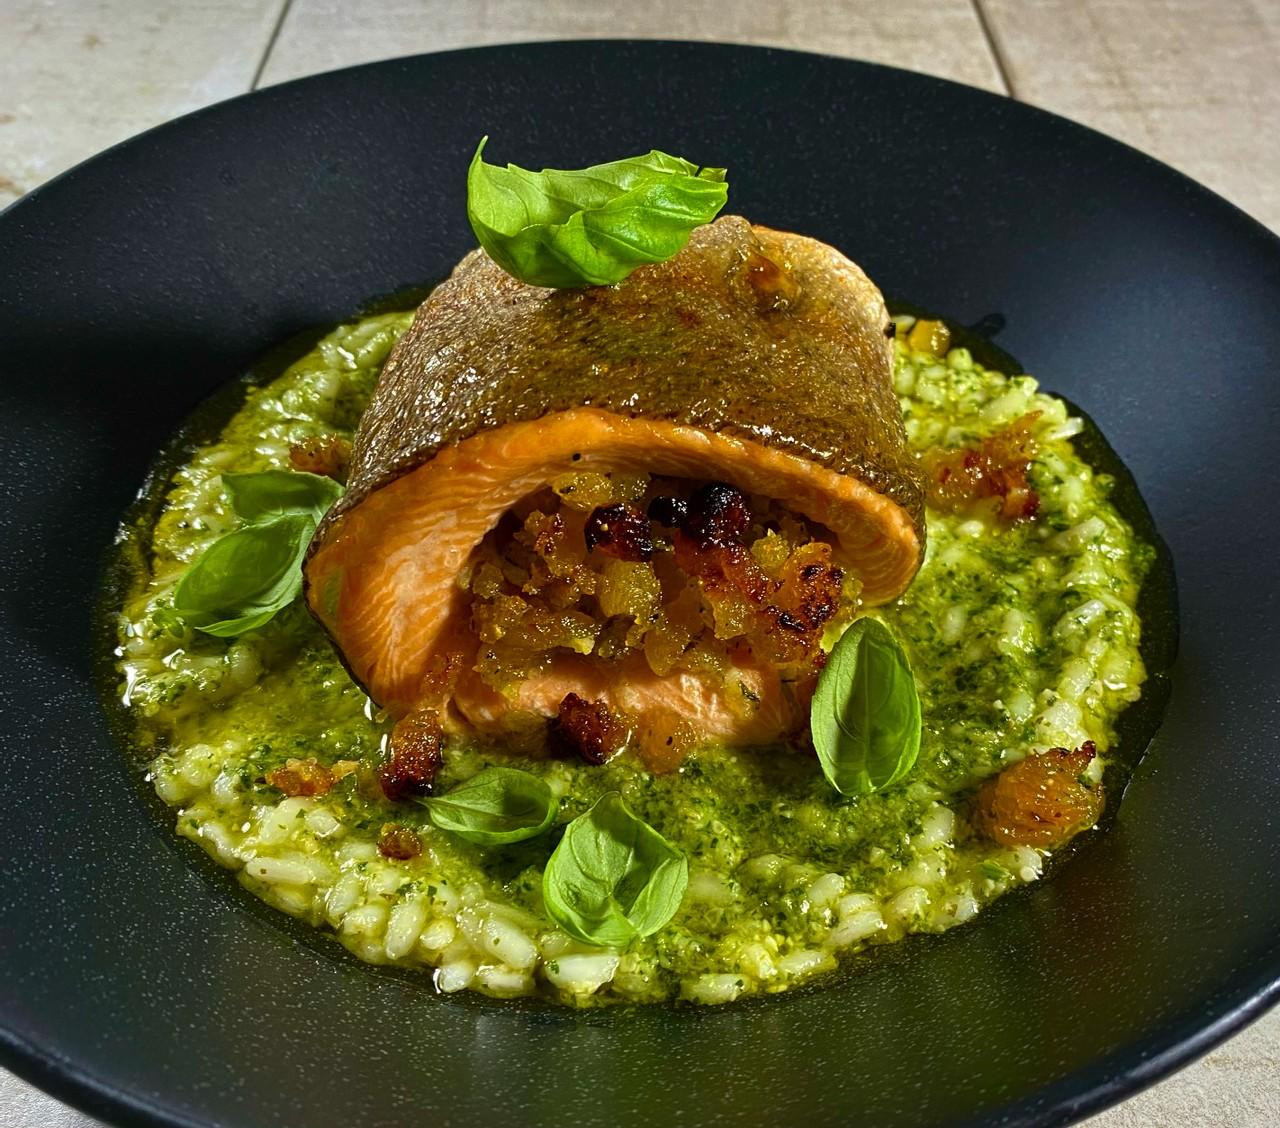 Apricot Stuffed Trout with a Pesto Risotto